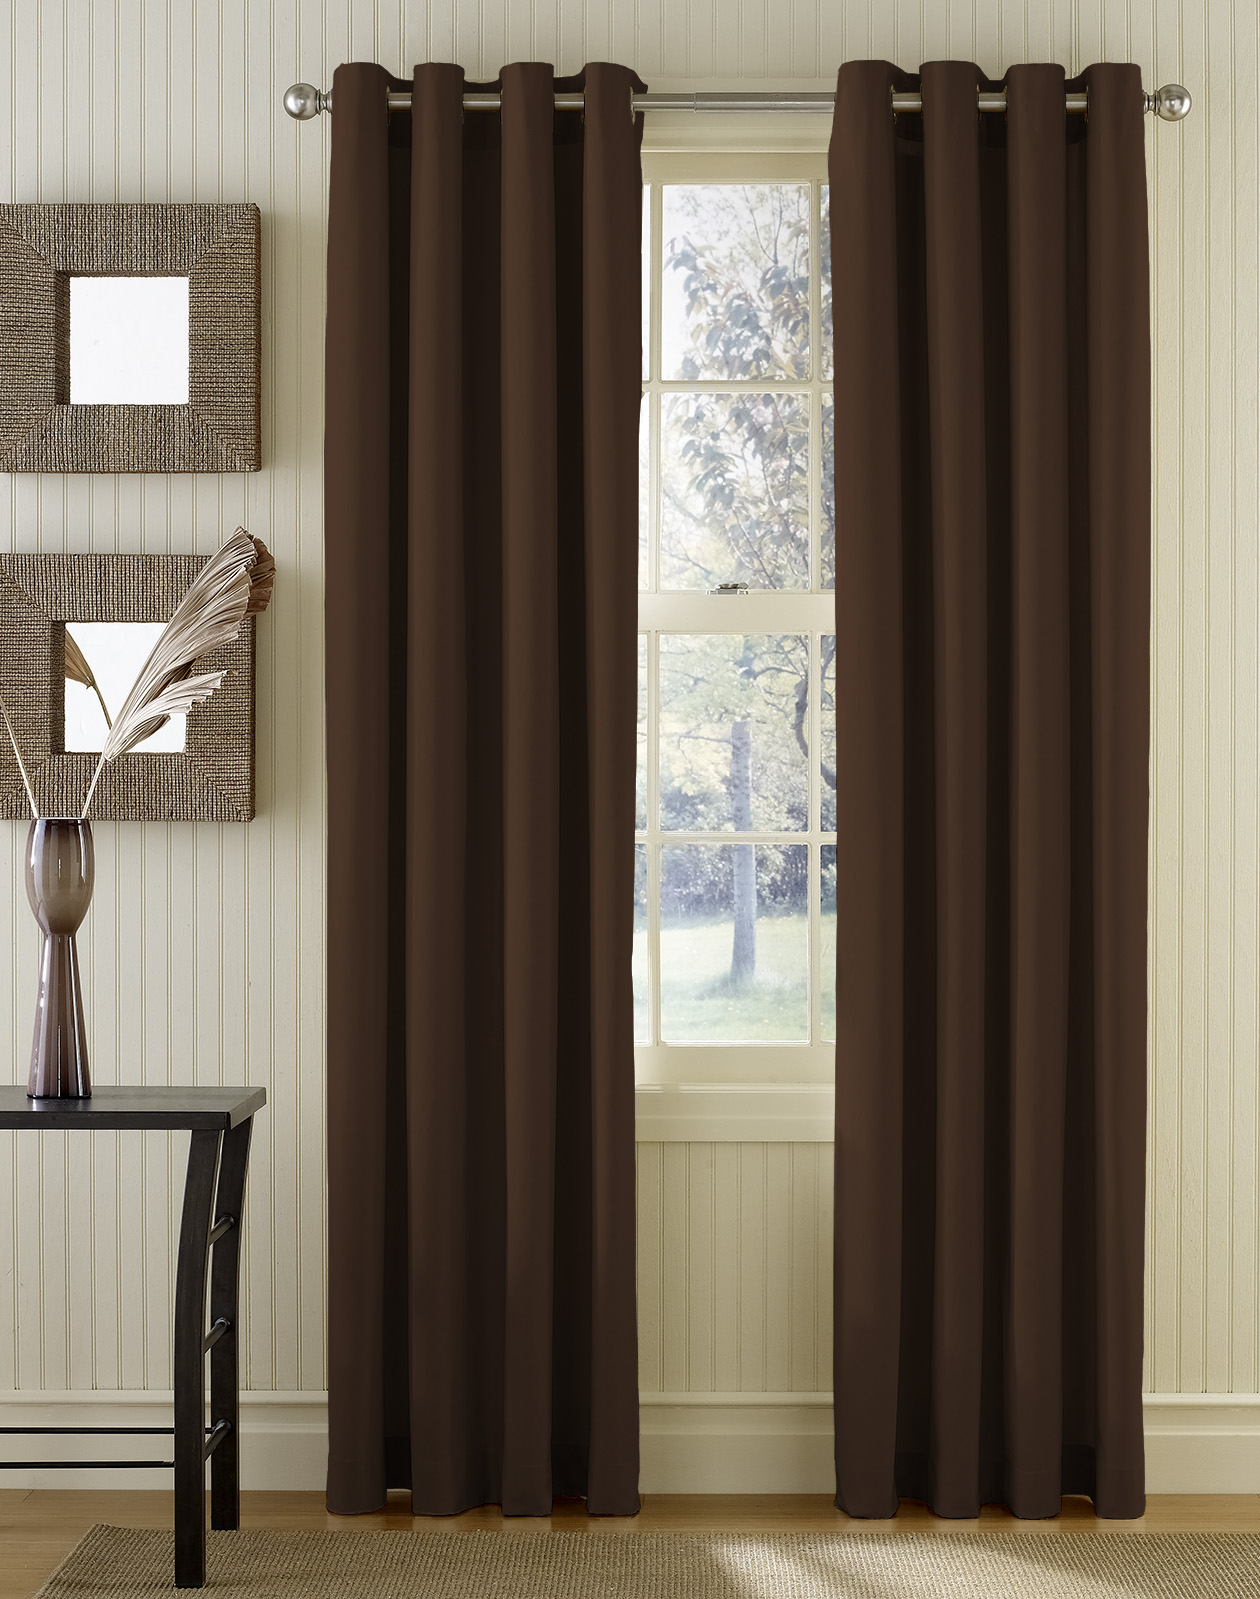 Window Curtain Design Ideas: Curtain Interior Design